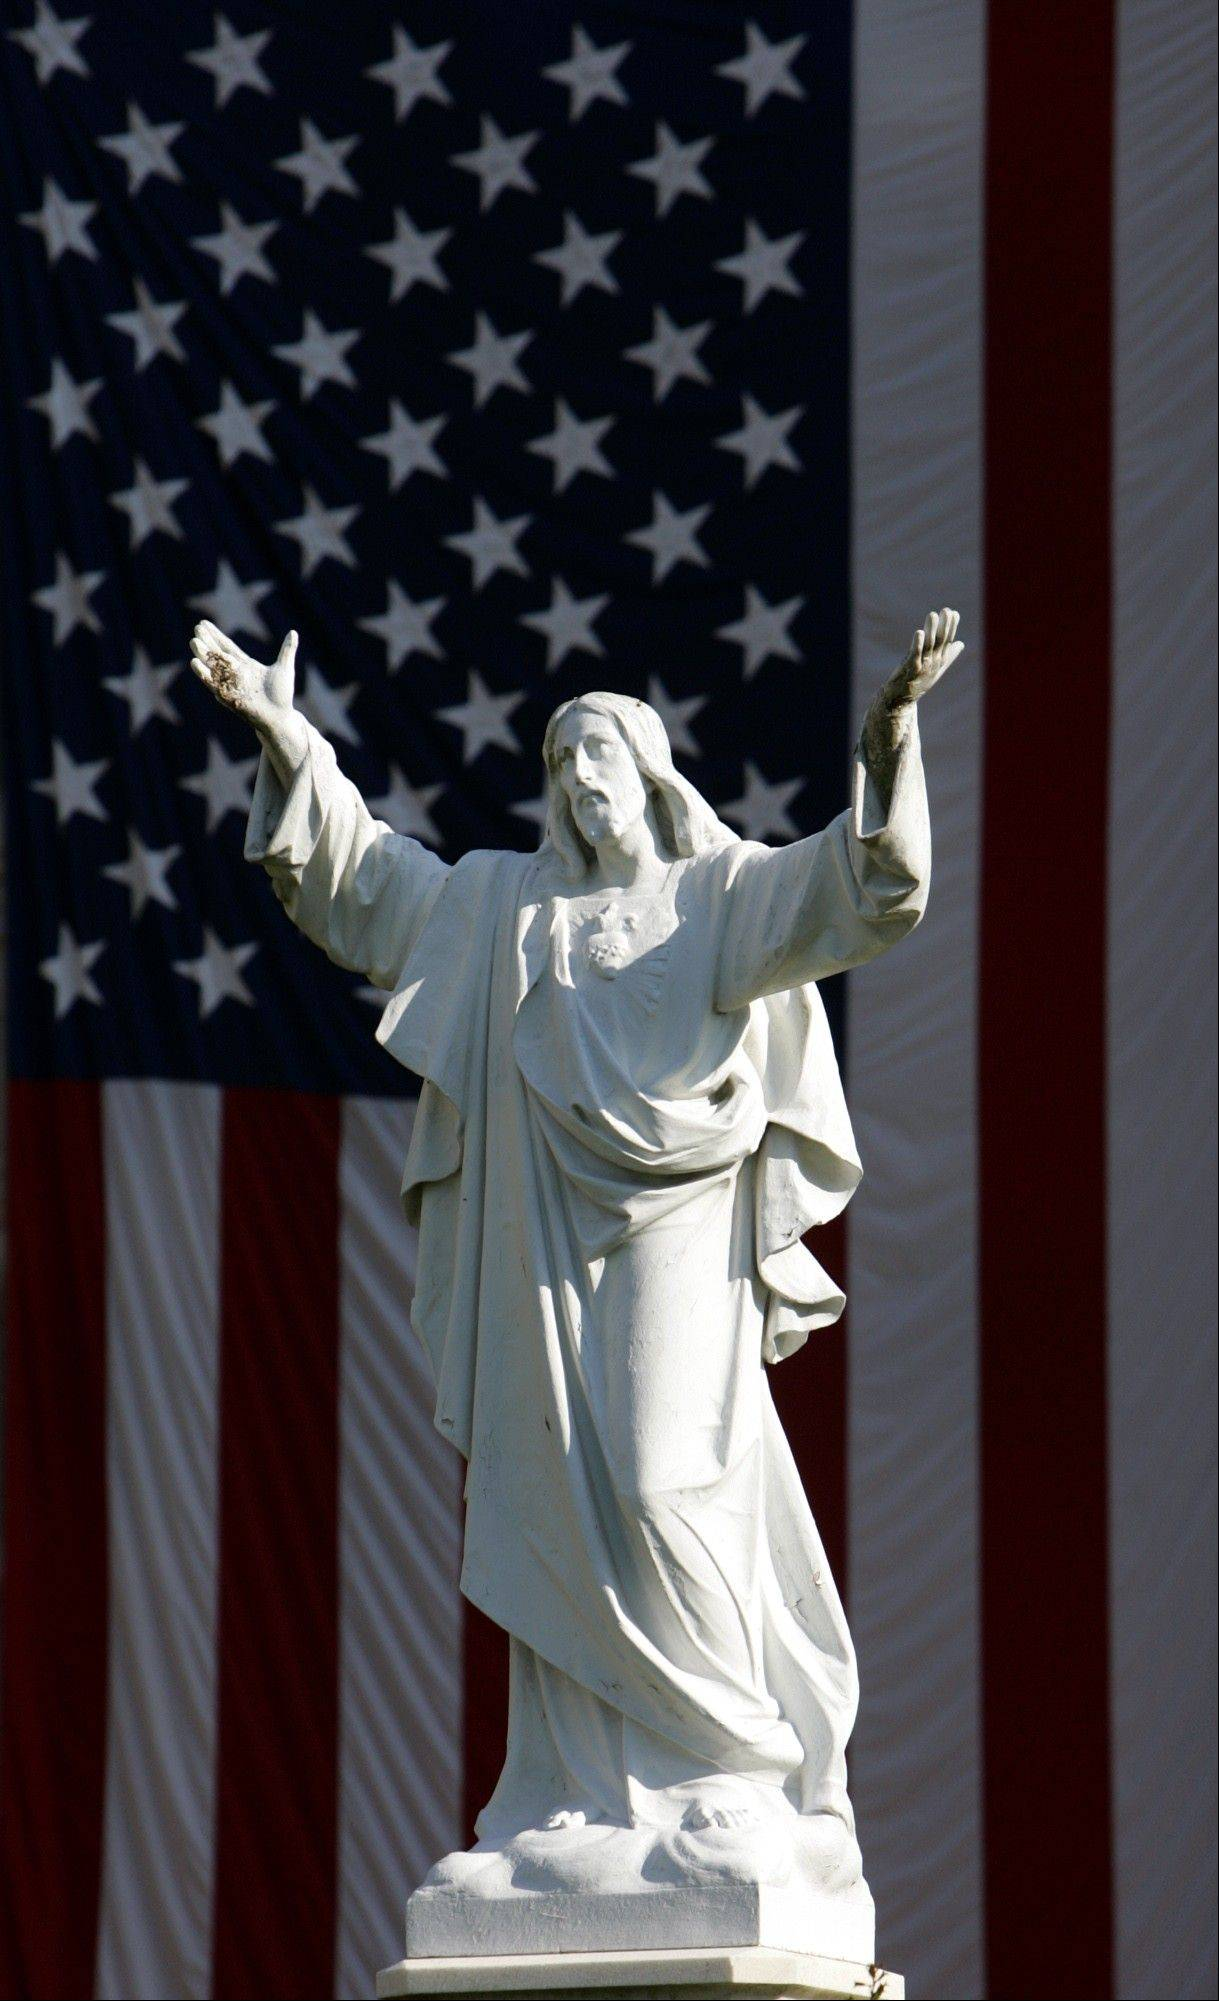 "A large American flag hangs at the Loyola University campus in New Orleans behind a life-size statue of Jesus Christ. In America, white Jesus images started to become widespread in the early 1800s, according to Edward Blum, co-author of ""The Color of Christ: The Son of God and the Saga of Race in America,"" coinciding with a dramatic rise in the number of slaves, a push to move Native Americans further west, and a growing manufacturing capability. Today, a white Jesus image is ingrained in American culture."